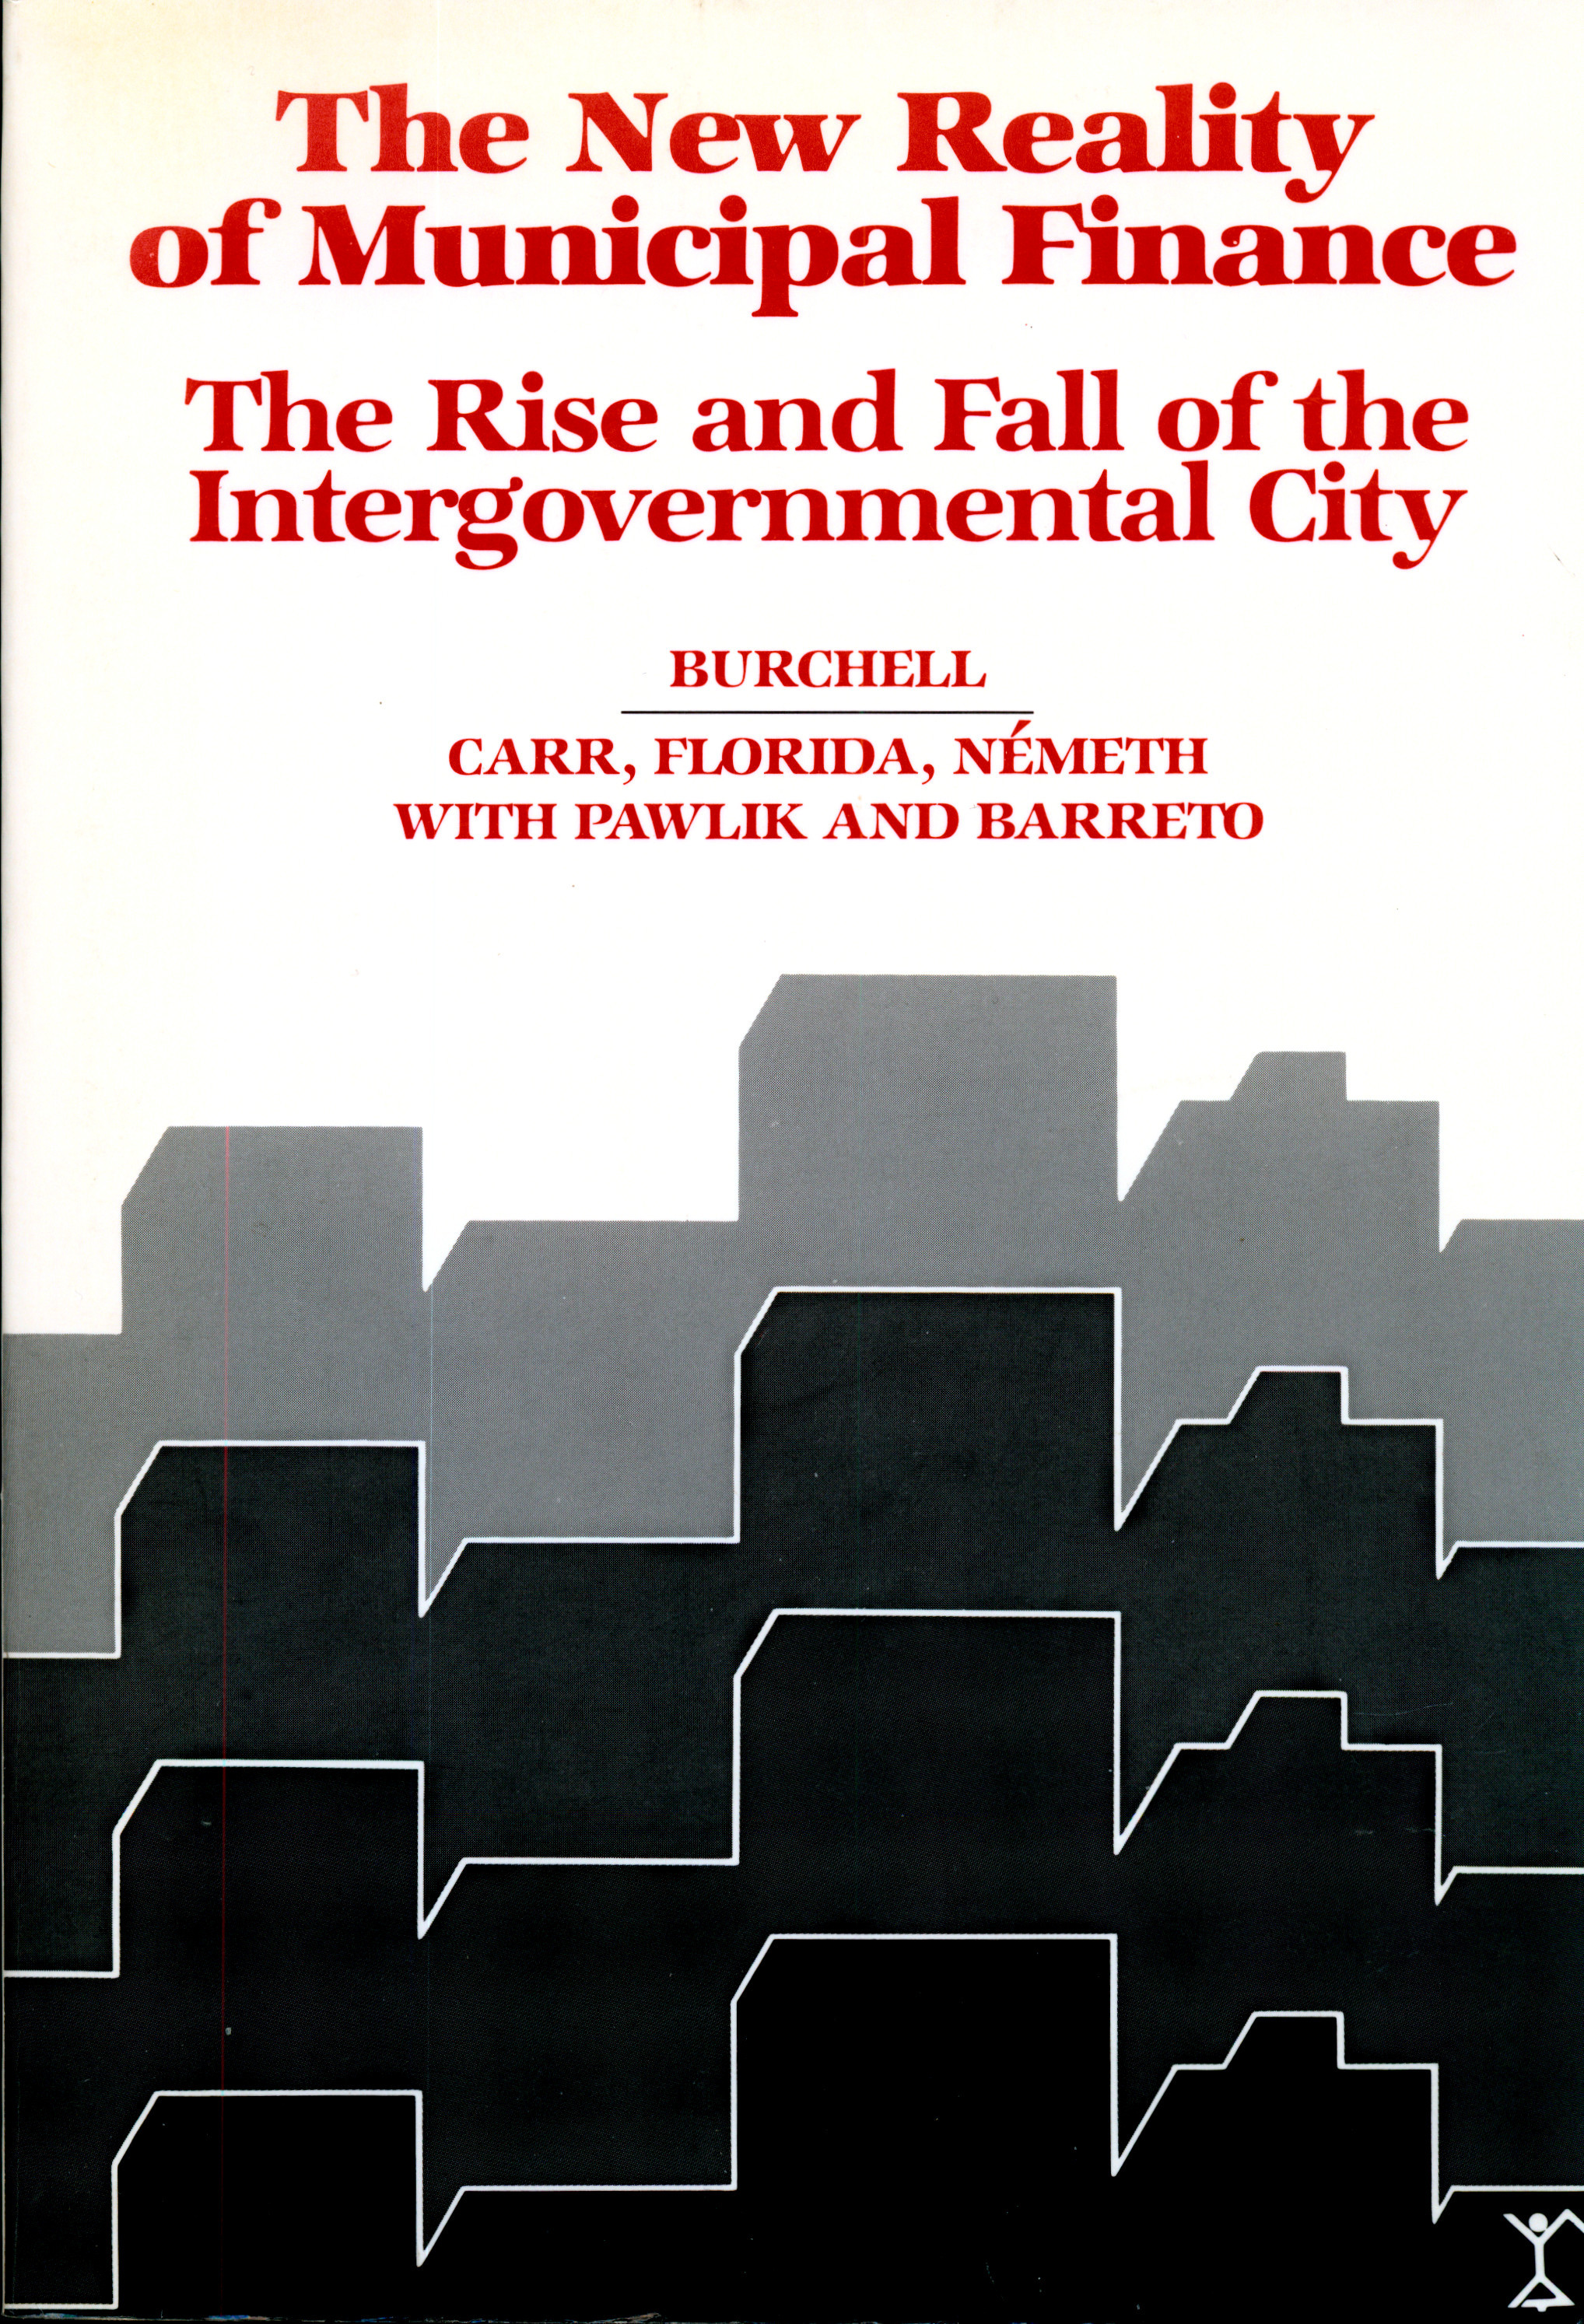 The New Reality of Municipal Finance: The Rise and Fall of the Intergovernmental City  by  Robert W. Burchell